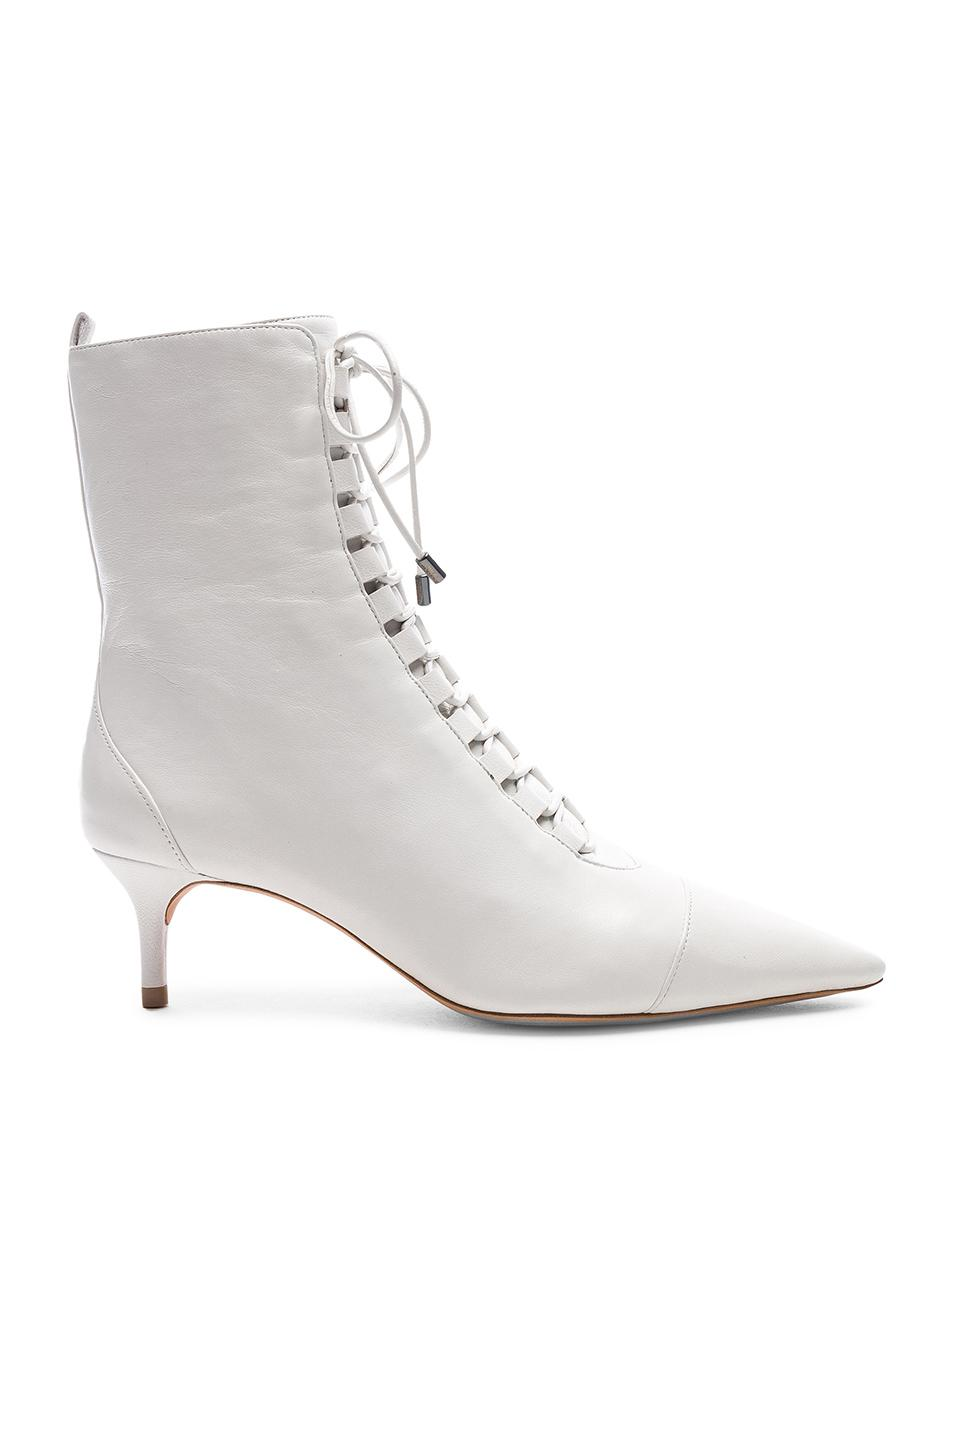 cce27964a621 Alexandre Birman Leather Millen Lace Up Ankle Boots in White - Save ...